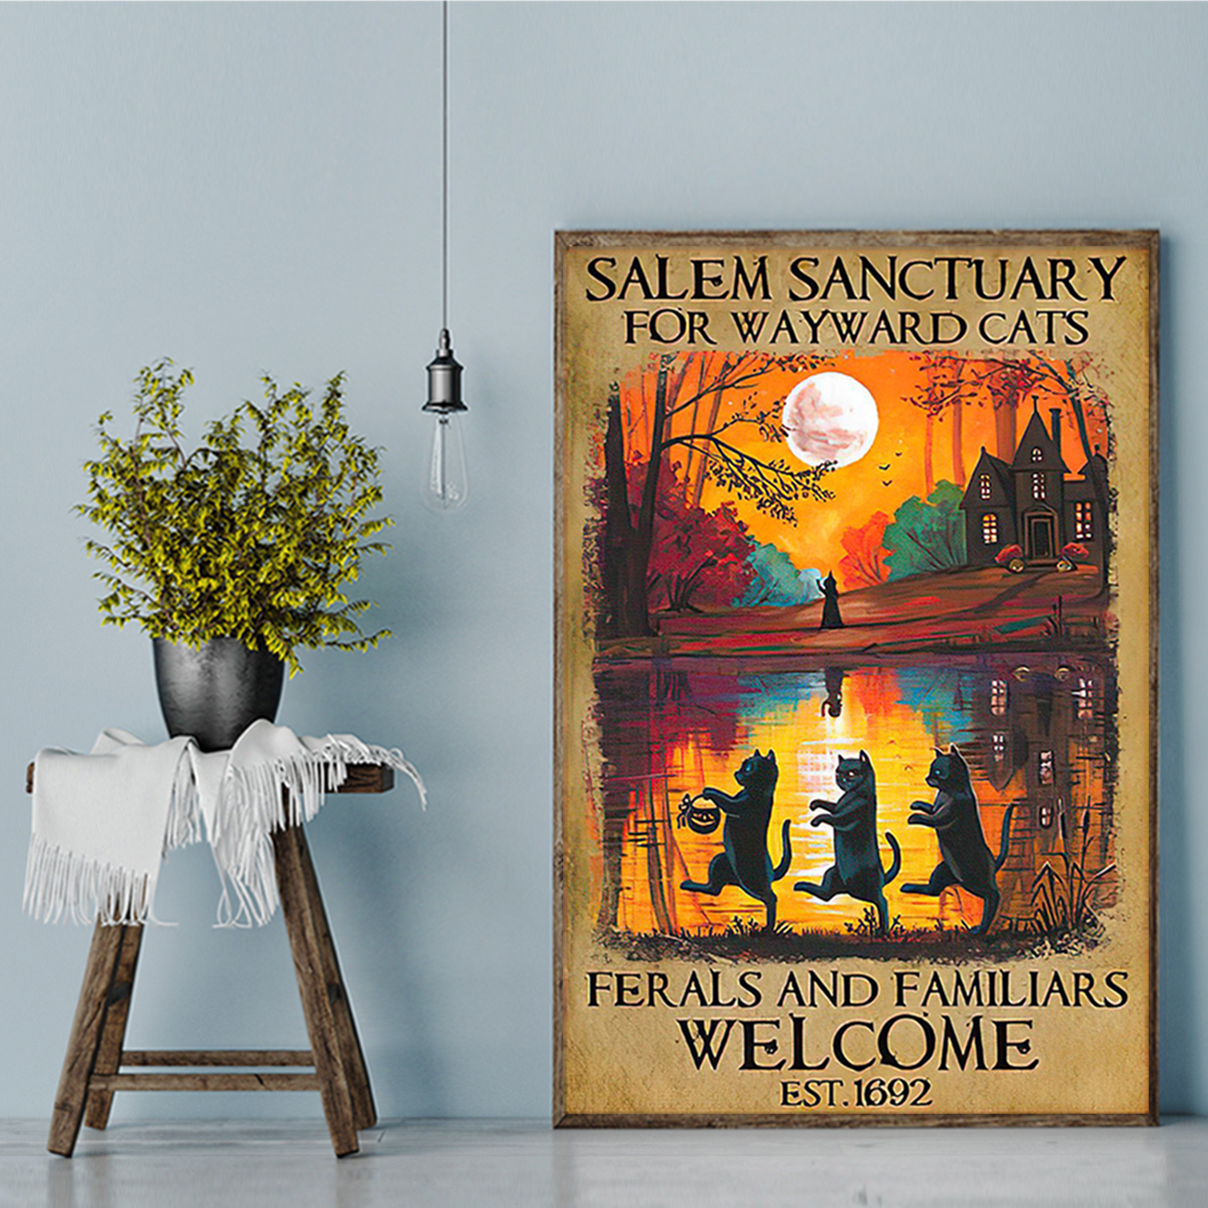 Halloween salem sanctuary for wayward cats ferals and familiars welcome poster A1